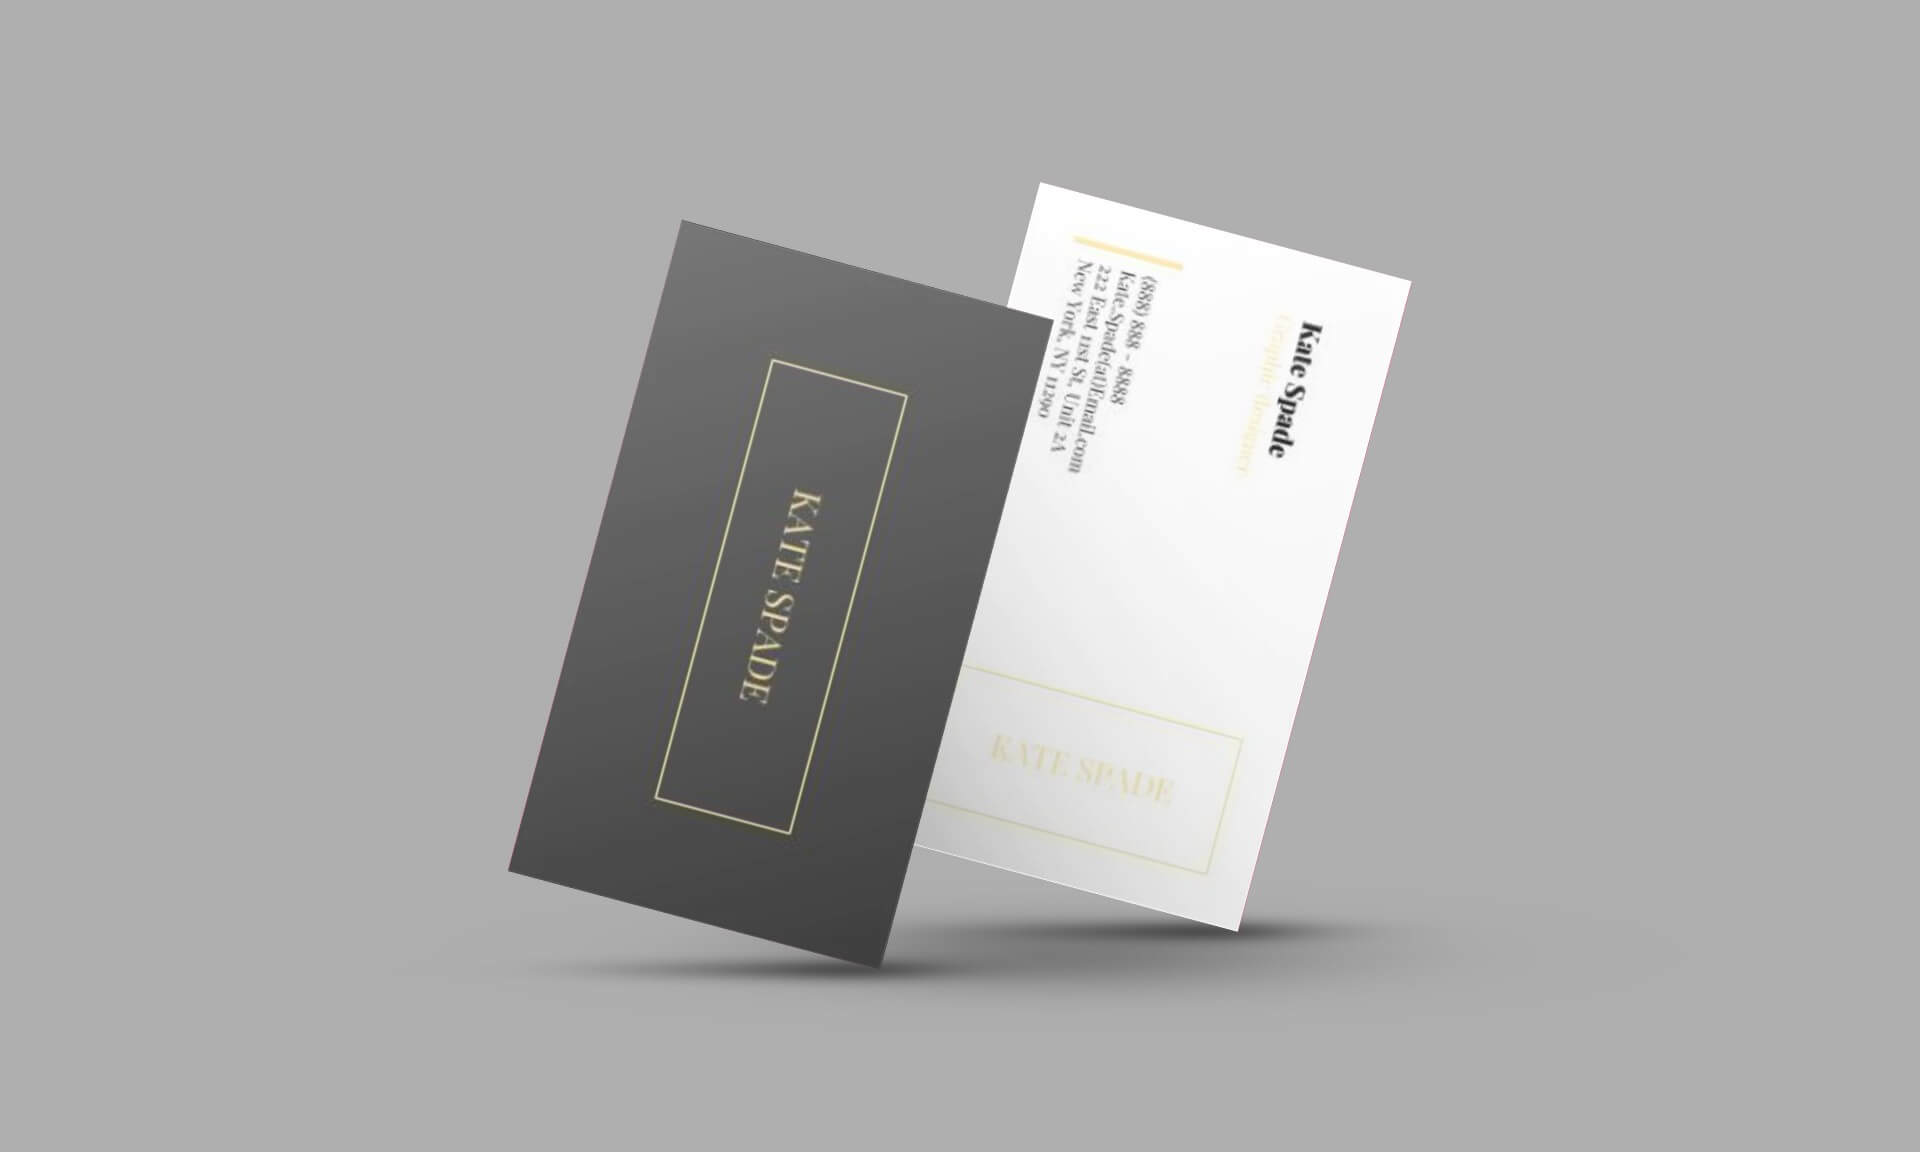 Kate Spade Business Card Template For Google Docs - Stand In Google Docs Business Card Template